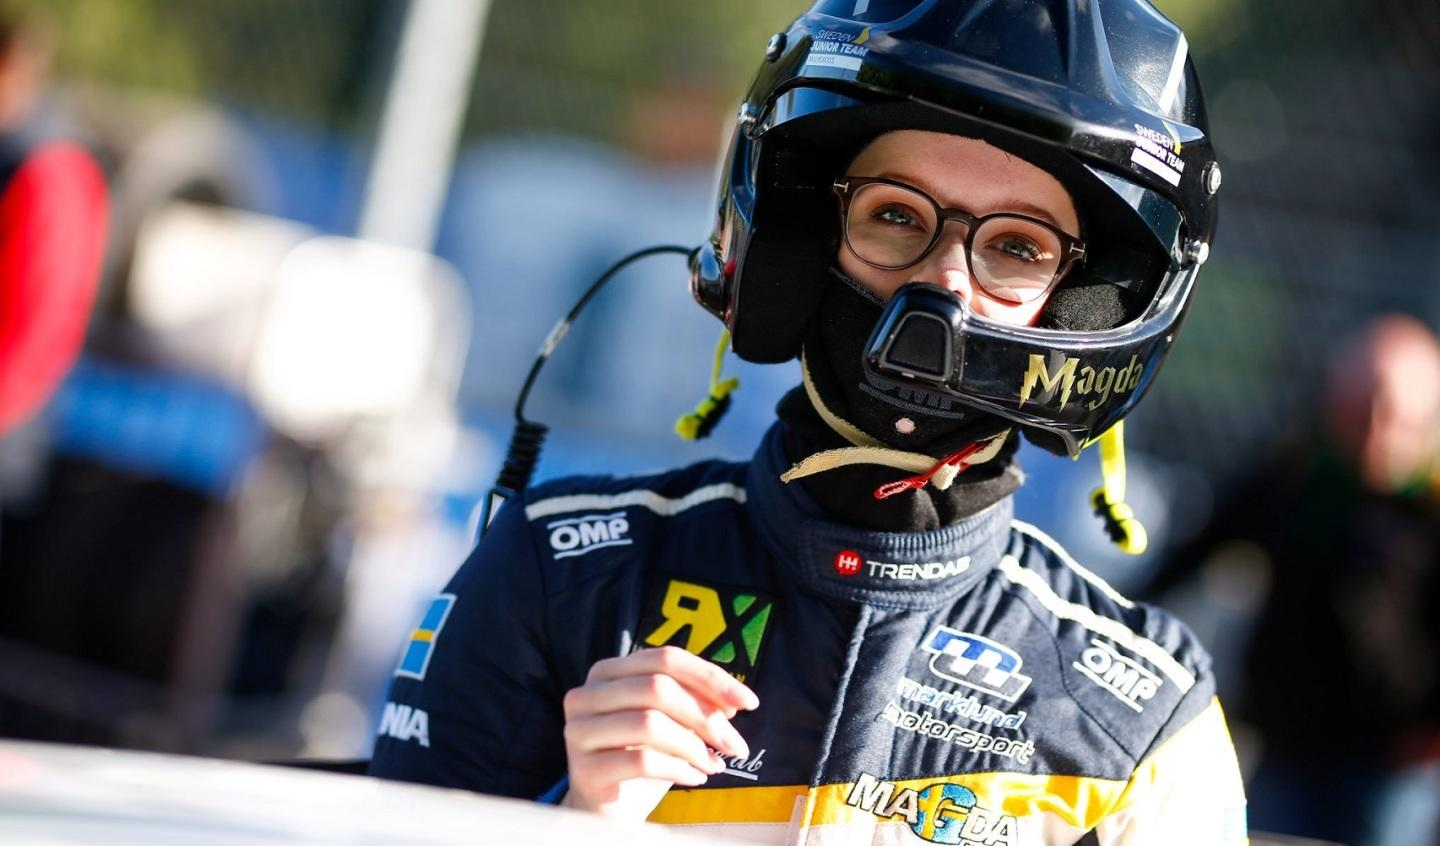 magda_andersson_euro_rx_2018